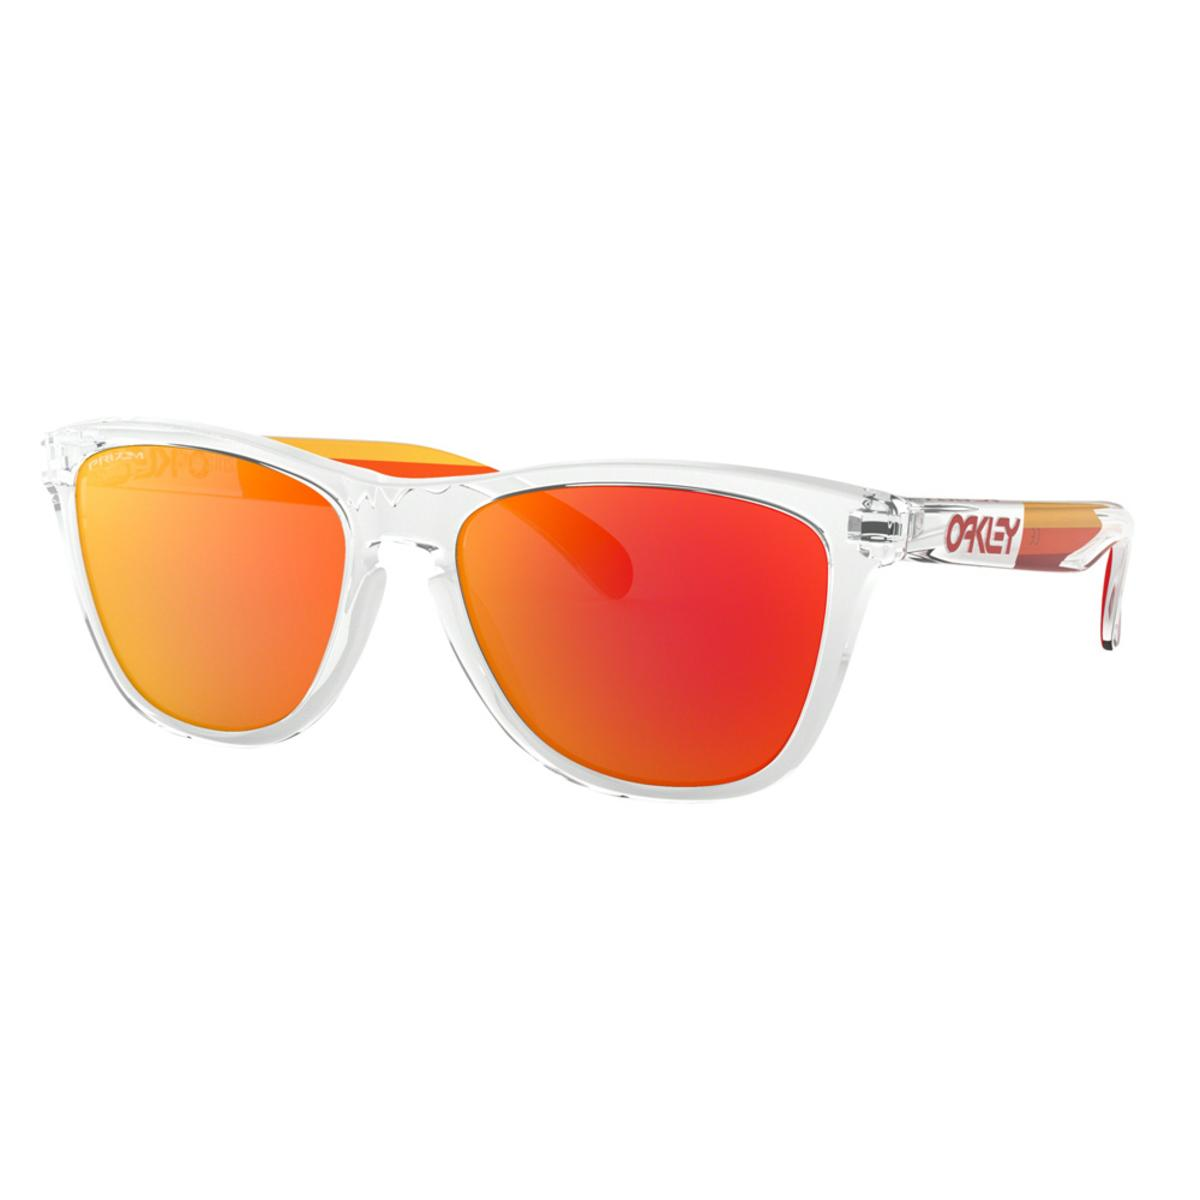 1d20ccbdfc1 Oakley Frogskins Grips Collection Polished Clear Sunglasses w Prizm Ruby -  The Warming Store